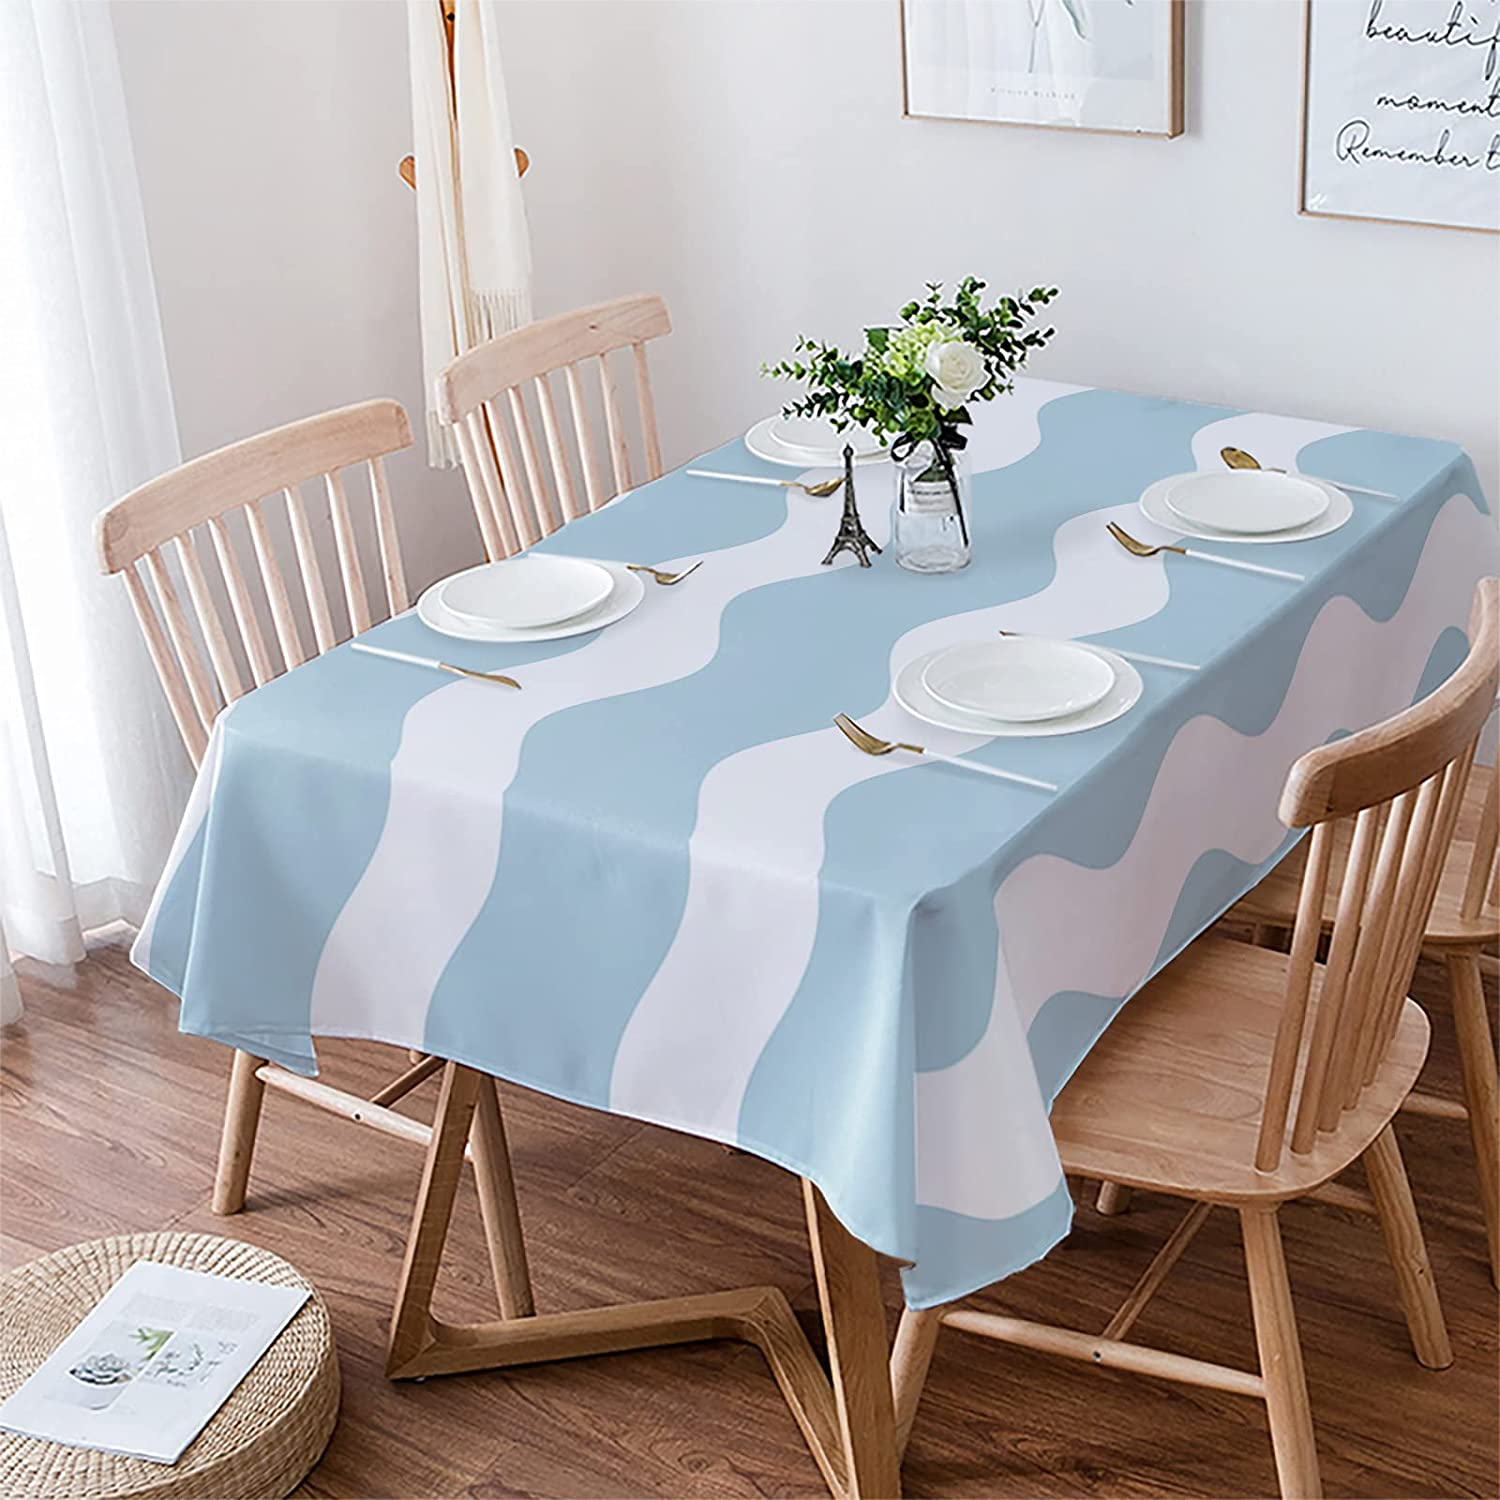 PartyShow Cotton Linen Tablecloth High Don't miss the campaign quality Rippled Picnic for Wavy Cloth